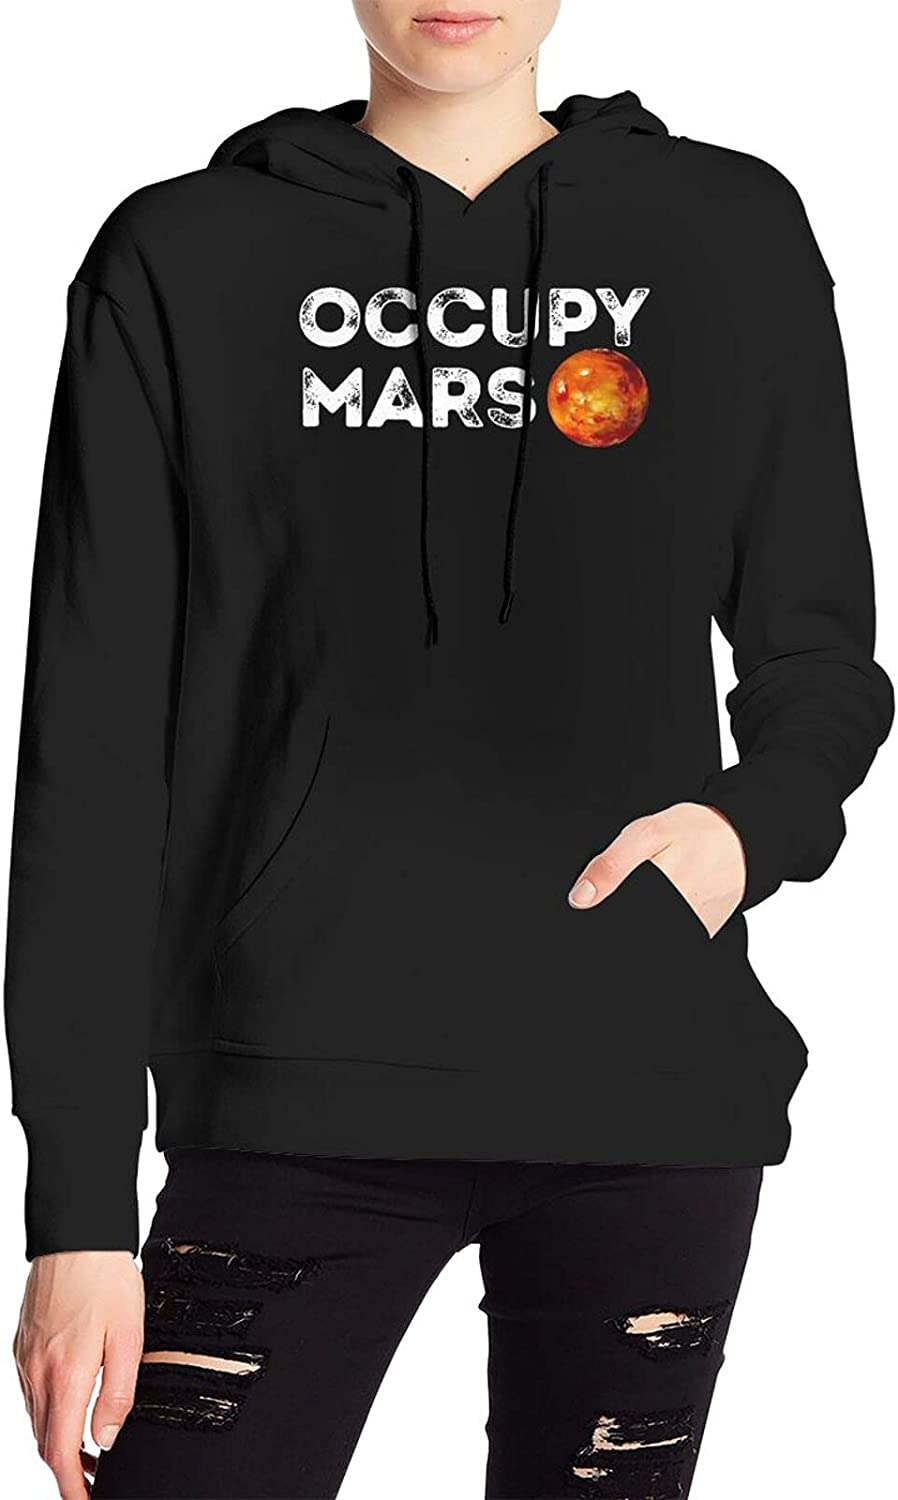 Occupy Mars Sweater Casual Hooded With Pocket For Men Women'S